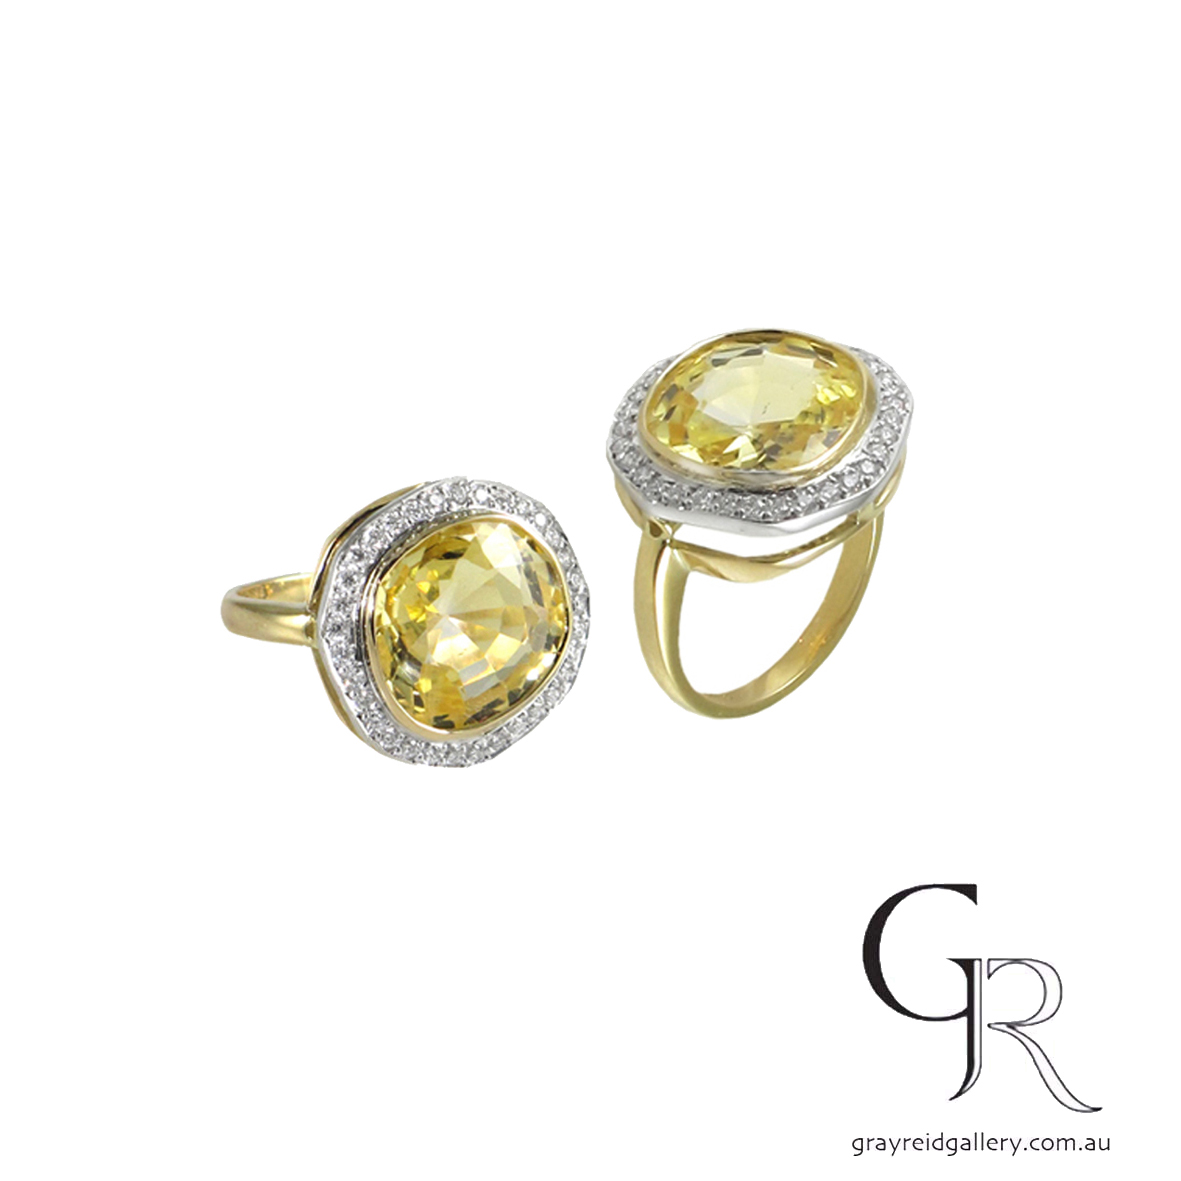 Diamond _ Yellow Sapphire Ring Melbourne Gray Raid Gallery Photo.jpg